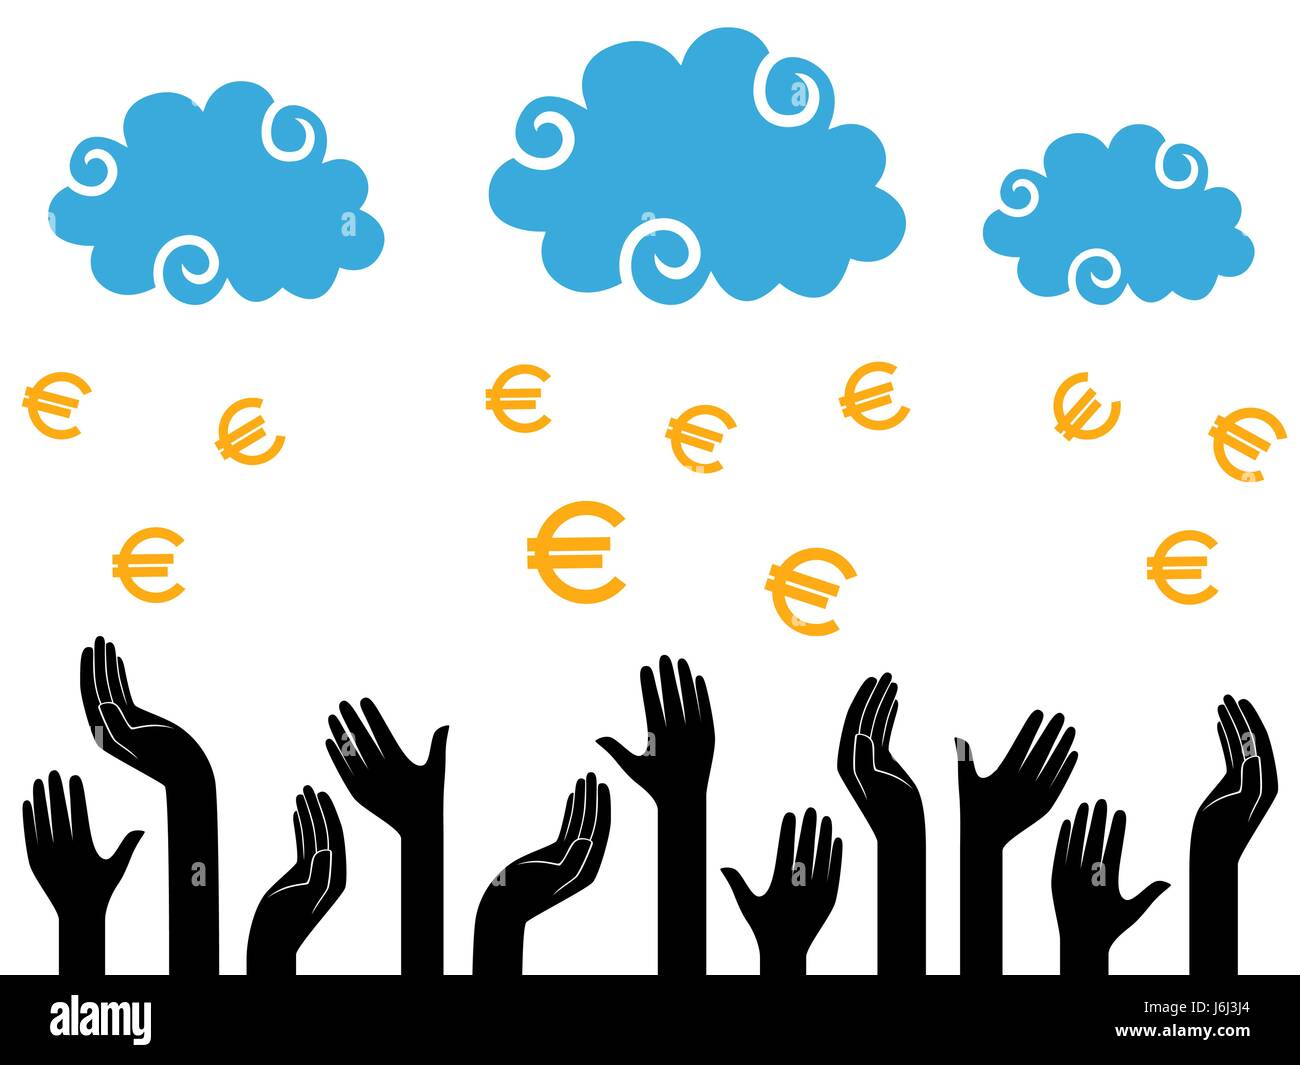 Euro Money falling from the clouds in the human hands, stylised conceptual vector illustration - Stock Vector